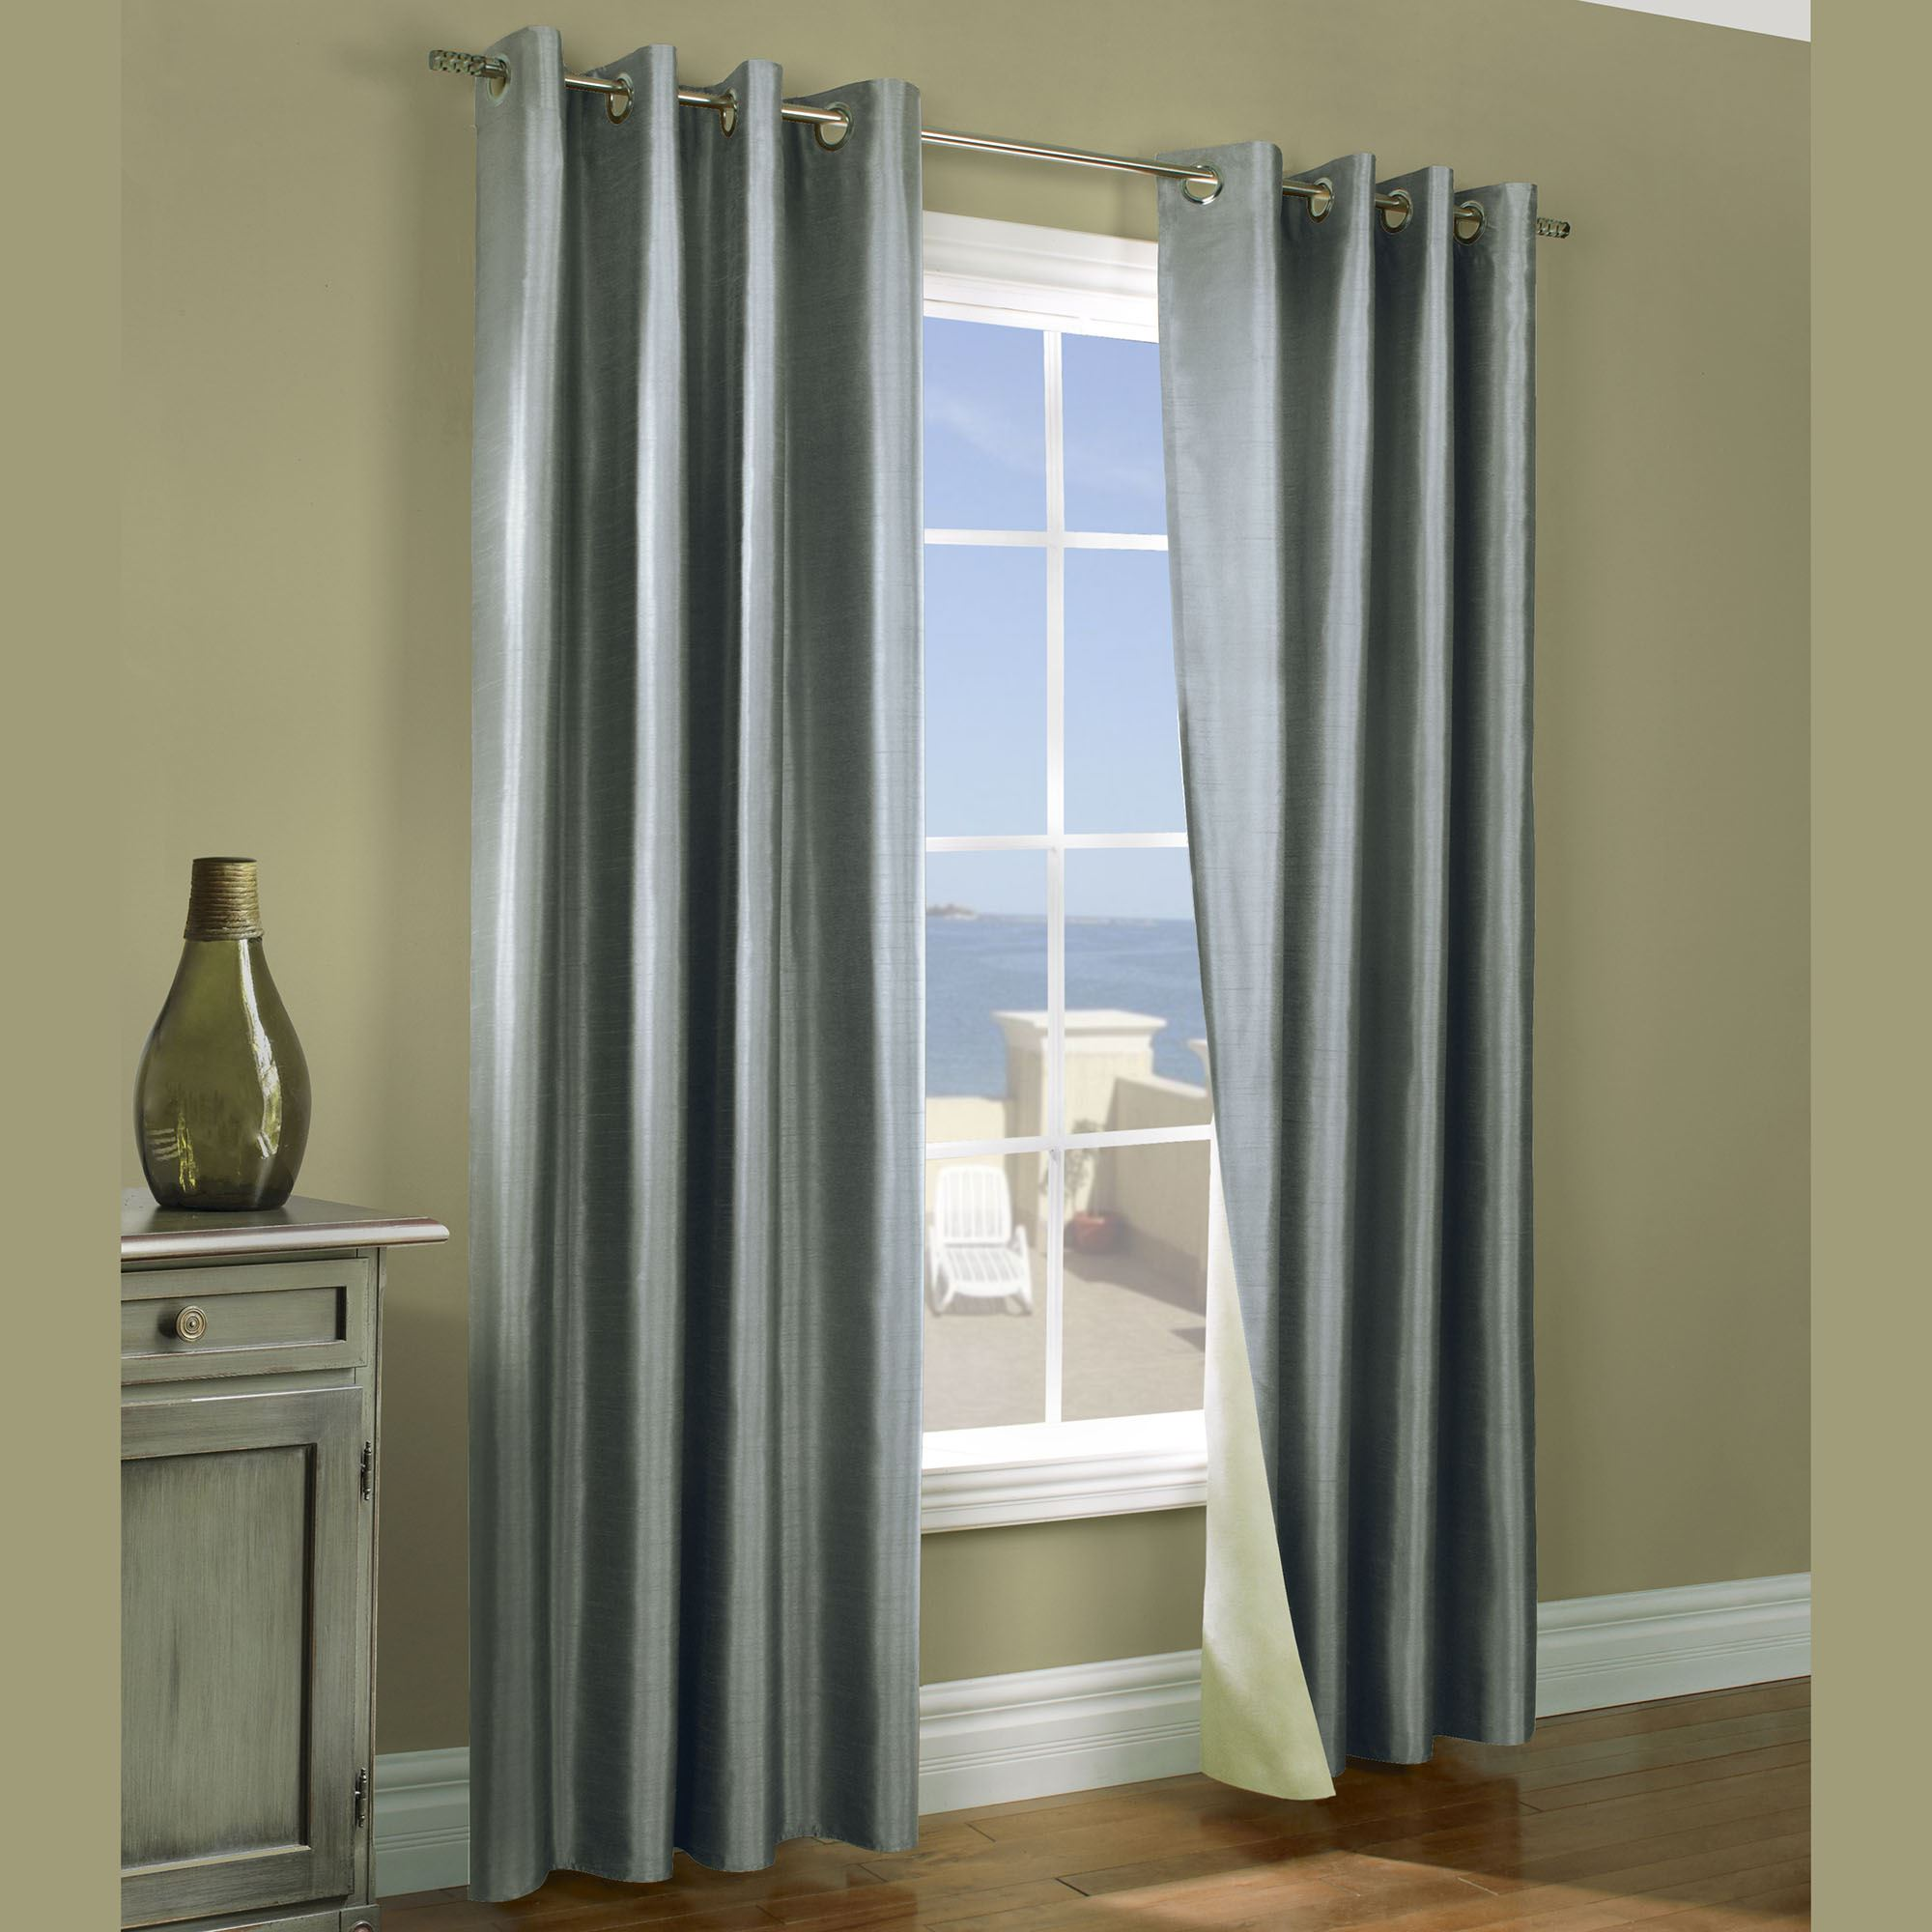 qlt smith wid drapes stripe p window spin panel sheer hei ivory crinkle jaclyn prod